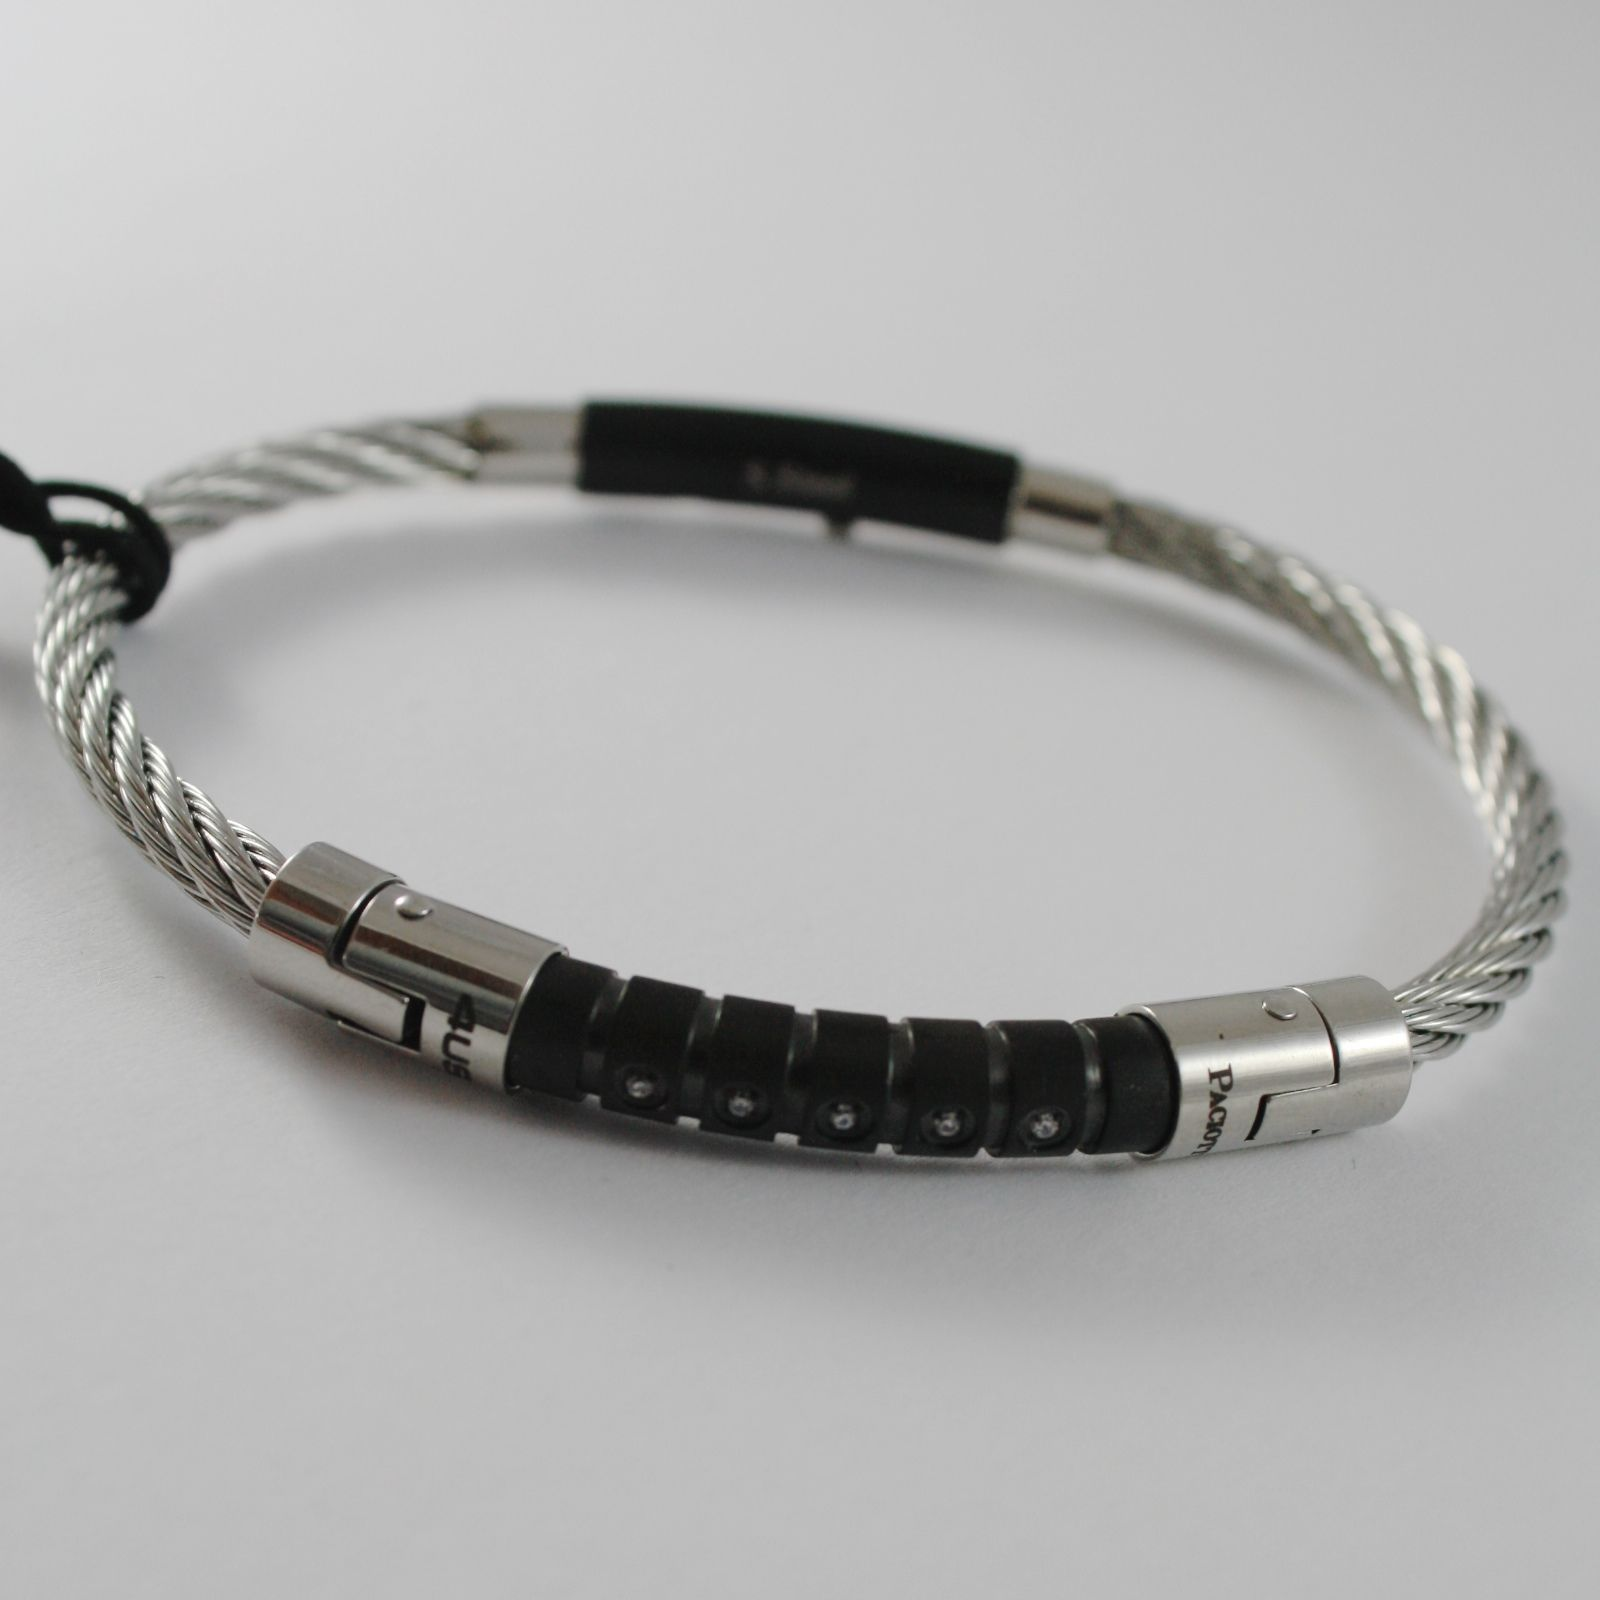 STAINLESS BLACK STEEL WIRE CABLE RIGID BANGLE ZIRCONIA BRACELET, CESARE PACIOTTI